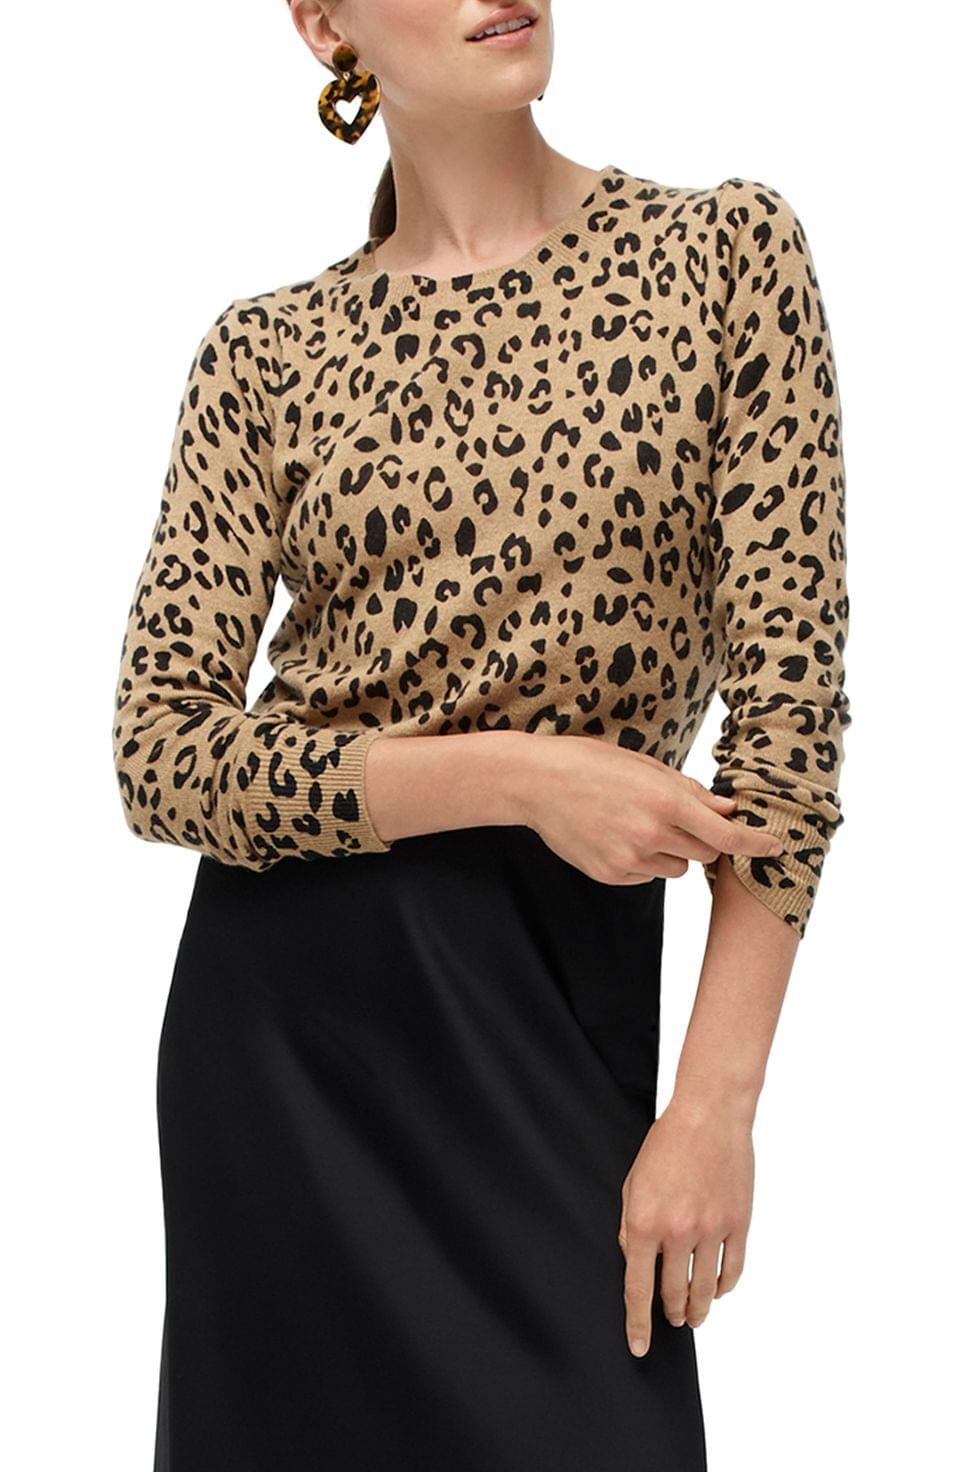 Women's J.Crew Leopard Print Long Sleeve Everyday Cashmere Crewneck Sweater (Regular & Plus Size)